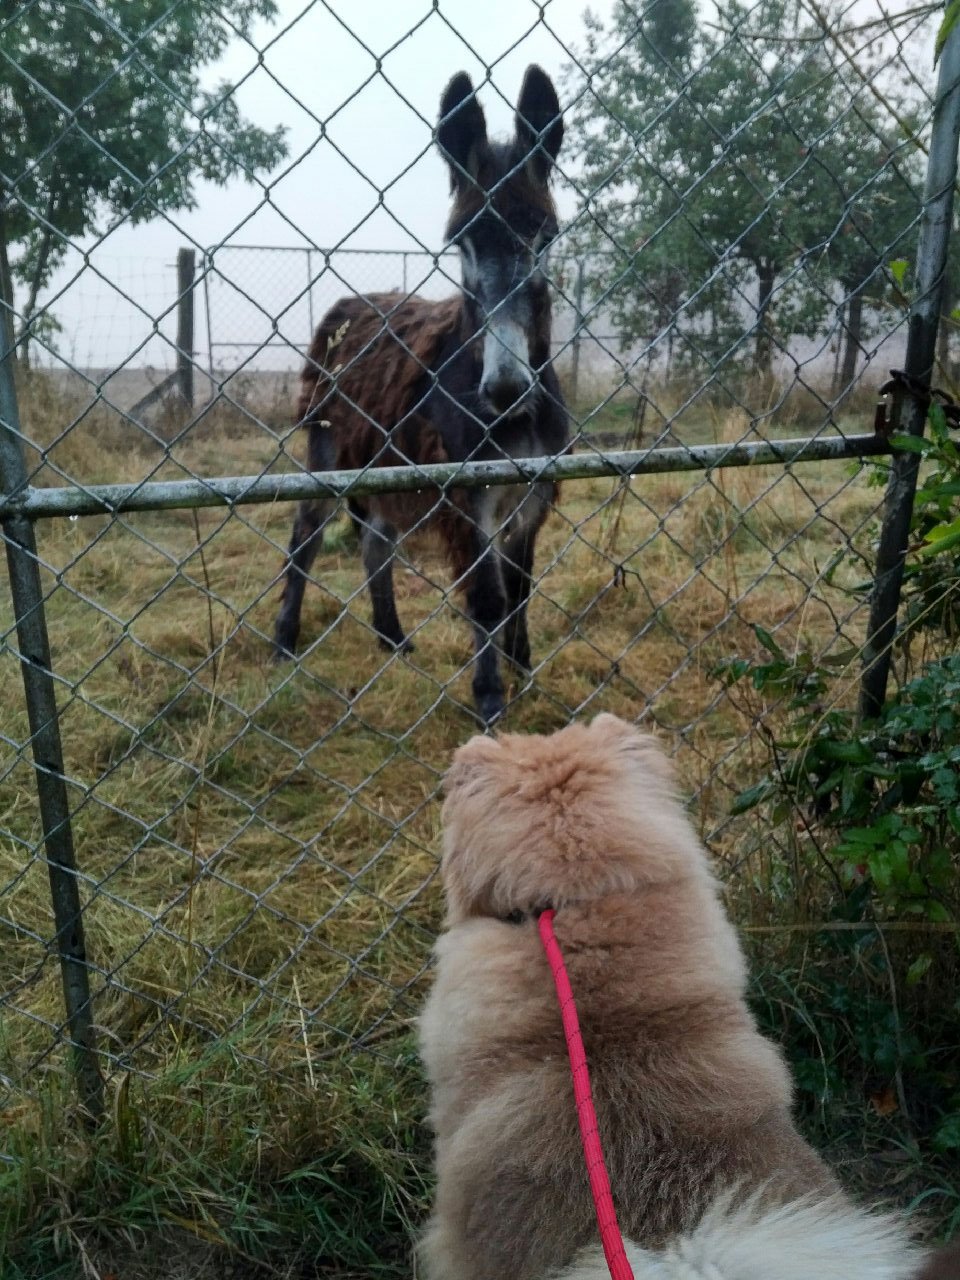 One of our passengers, Lenny, meeting a donkey while out on his walk — mutual fascination!